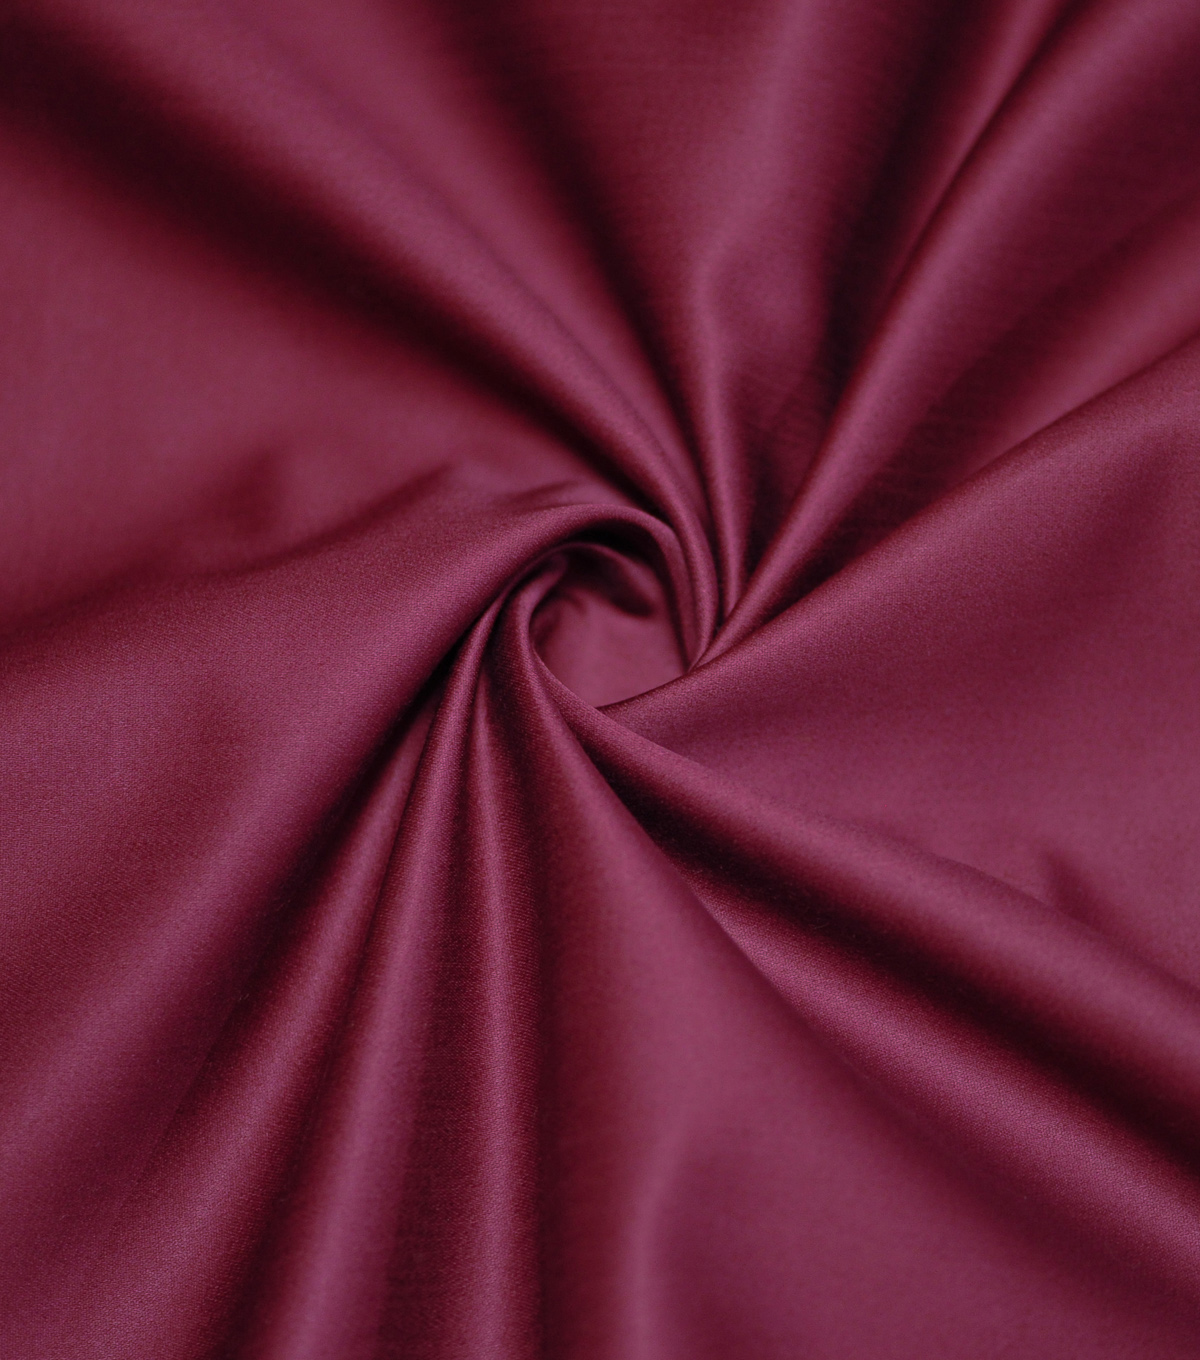 Supima Sateen Cotton Fabric-Solids, Russet Red